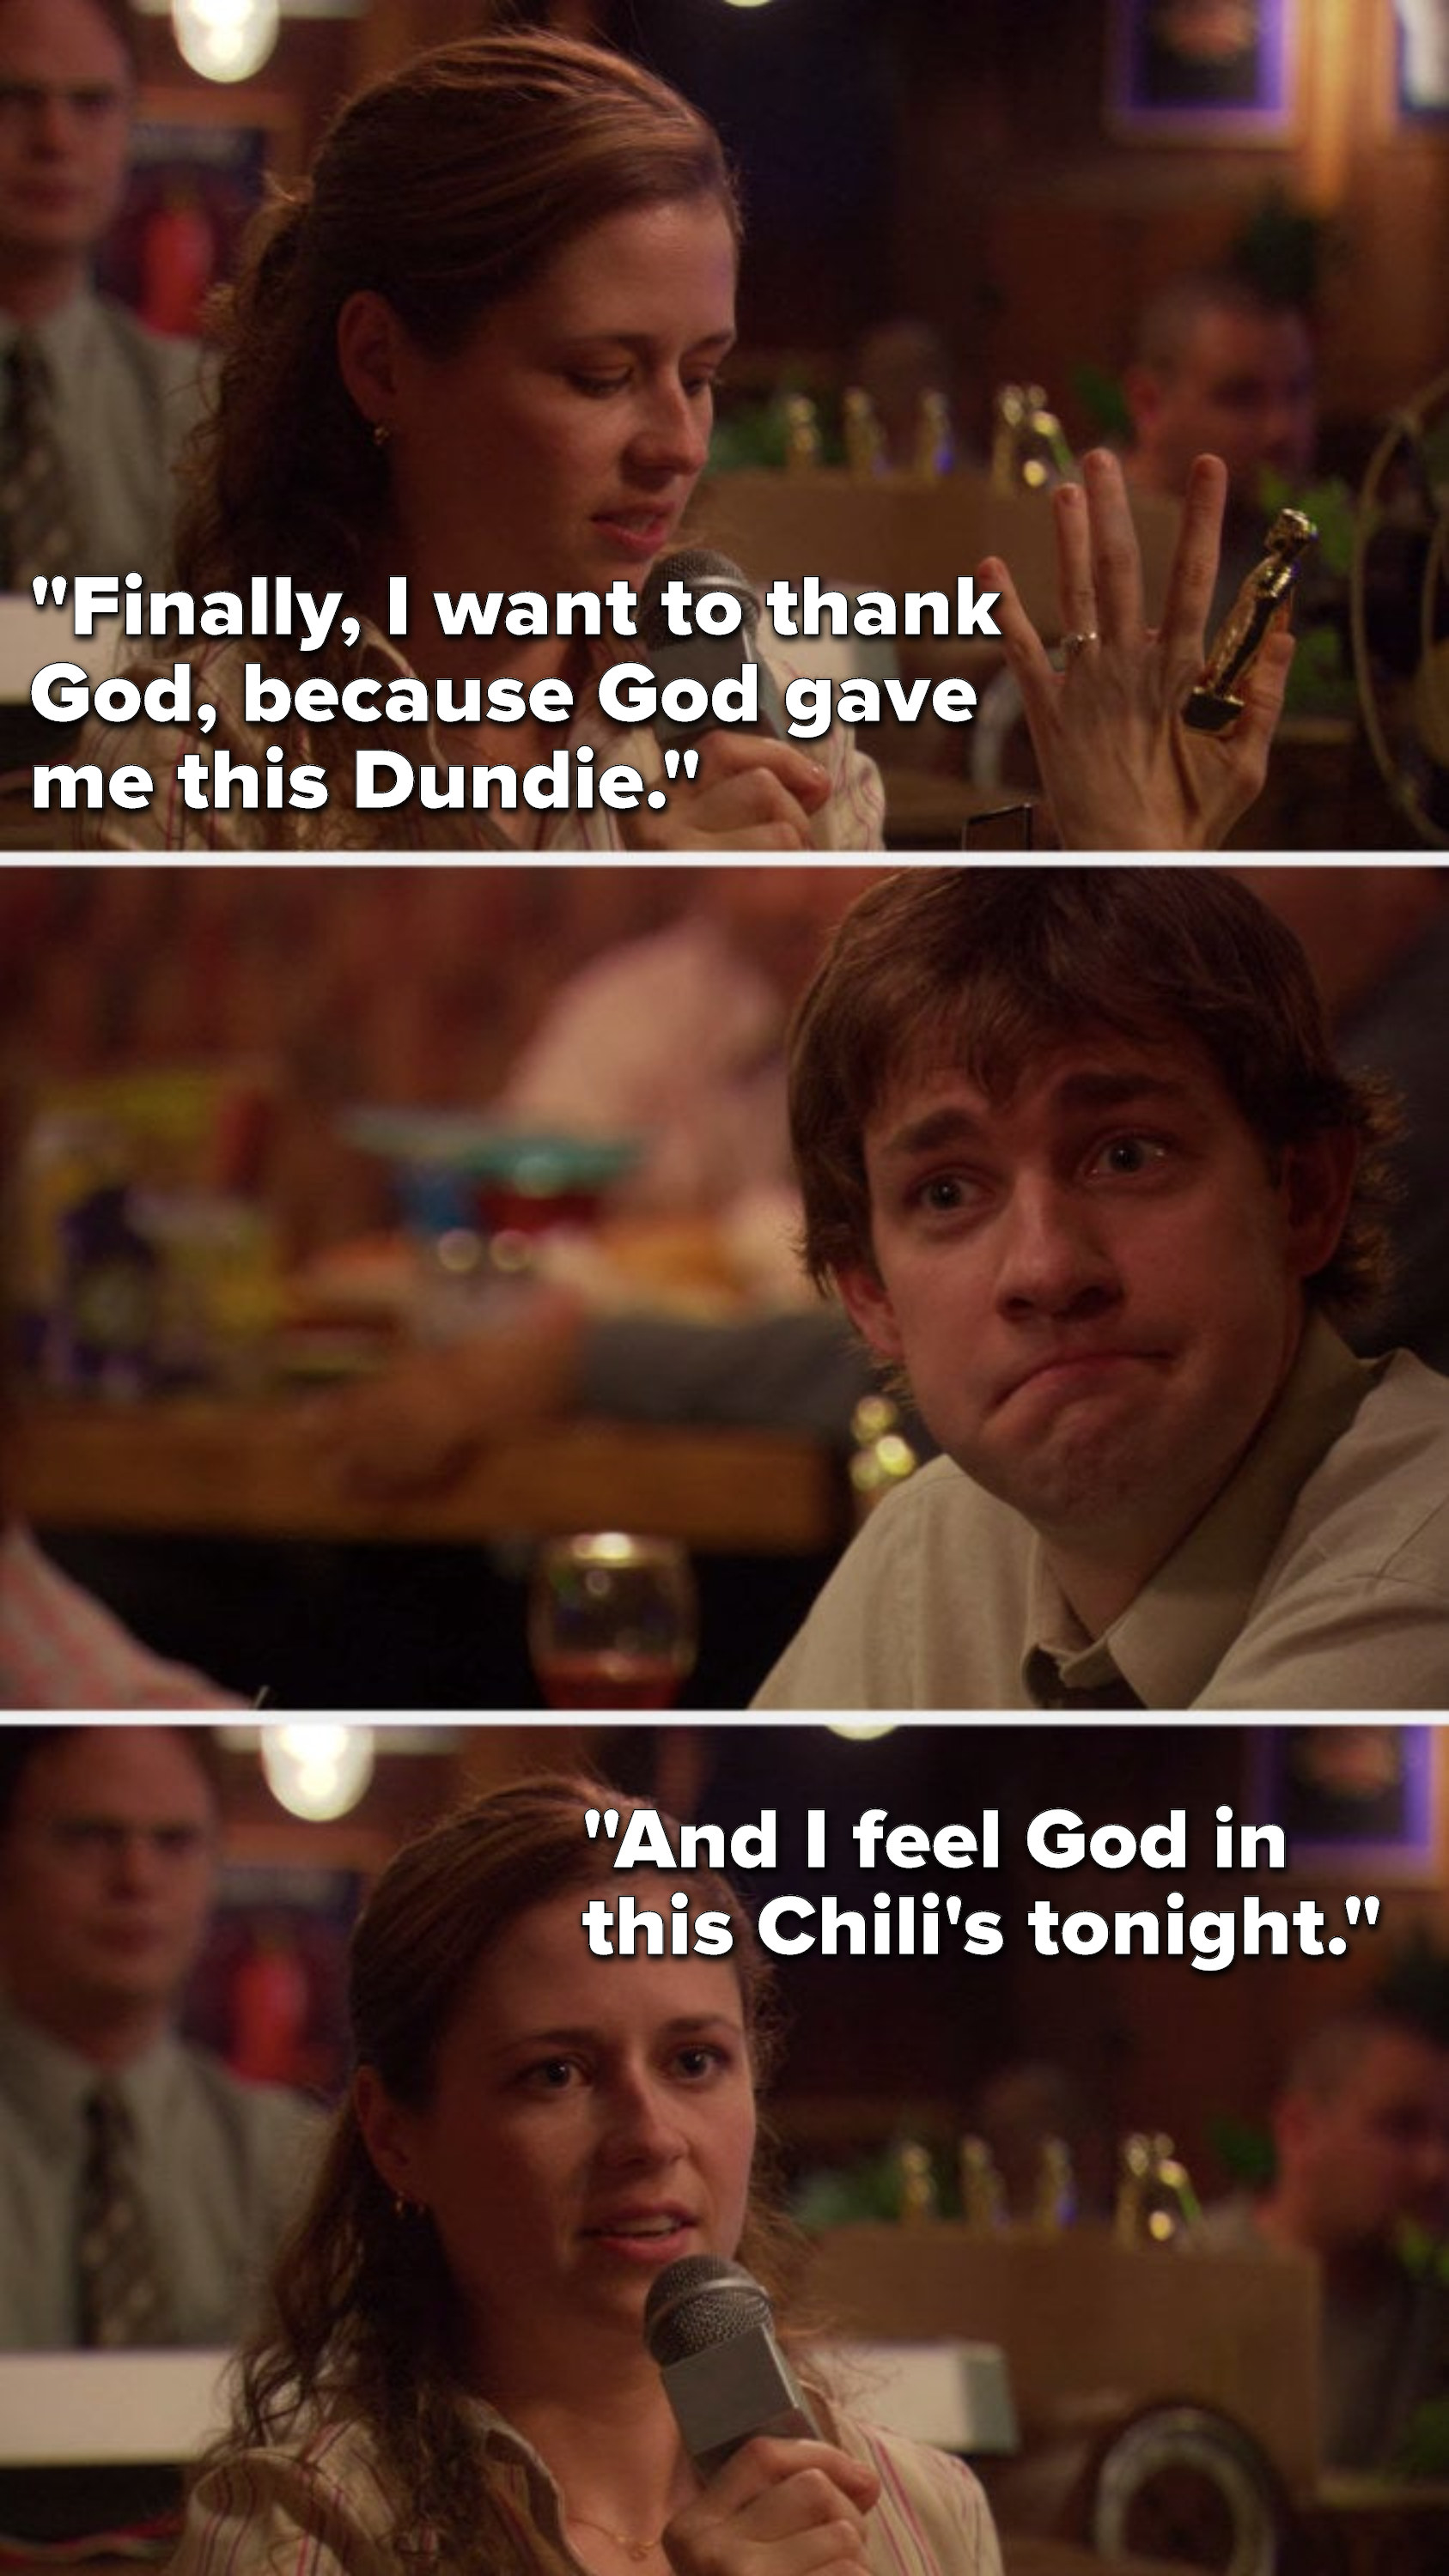 Pam says, Finally, I want to thank God, because God gave me this Dundie, and I feel God in this Chili's tonight